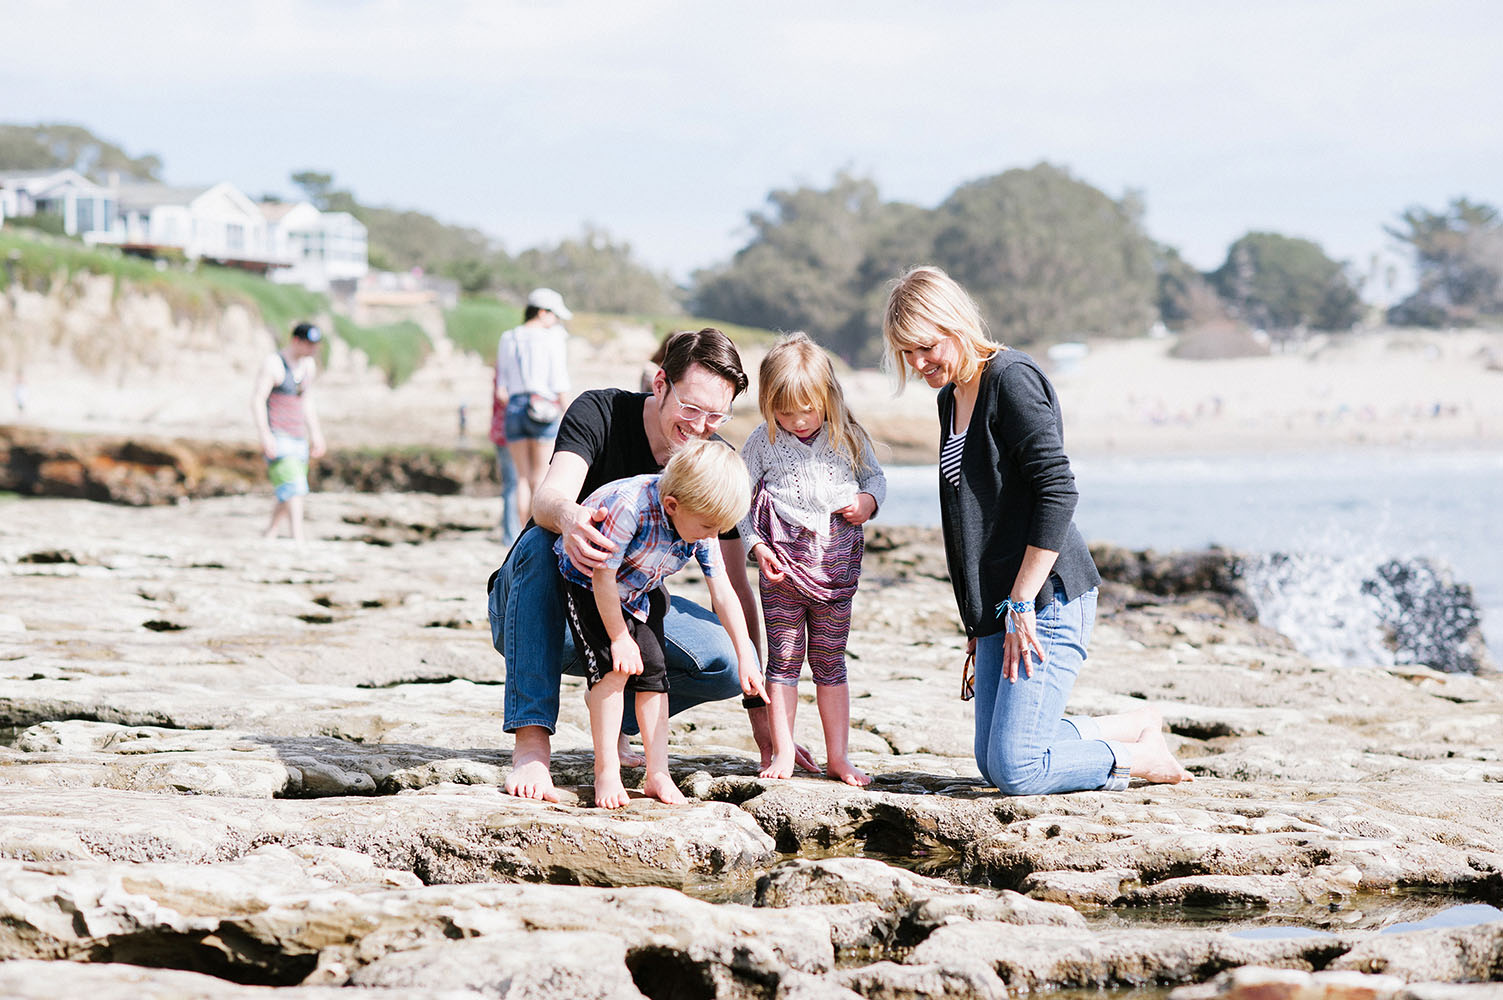 Family looking at tide pools by the ocean